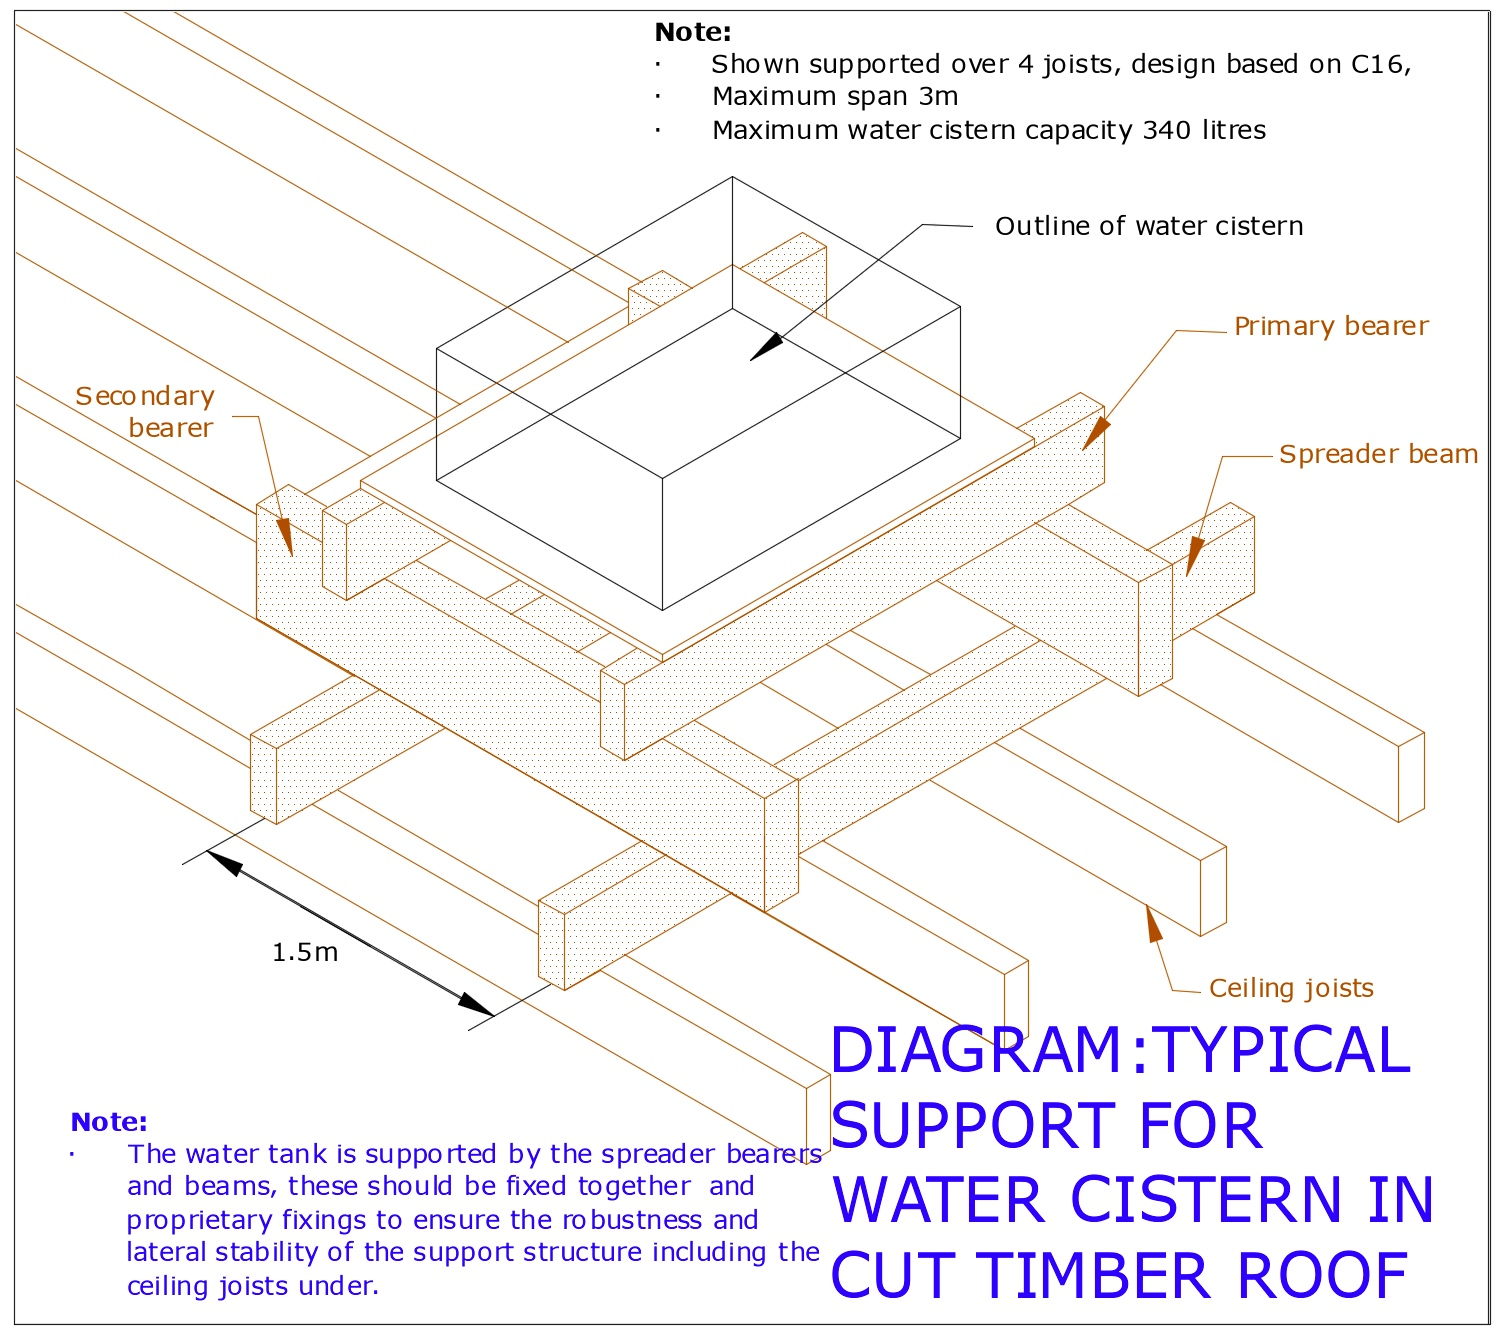 Diagram D79 - Water cistern support